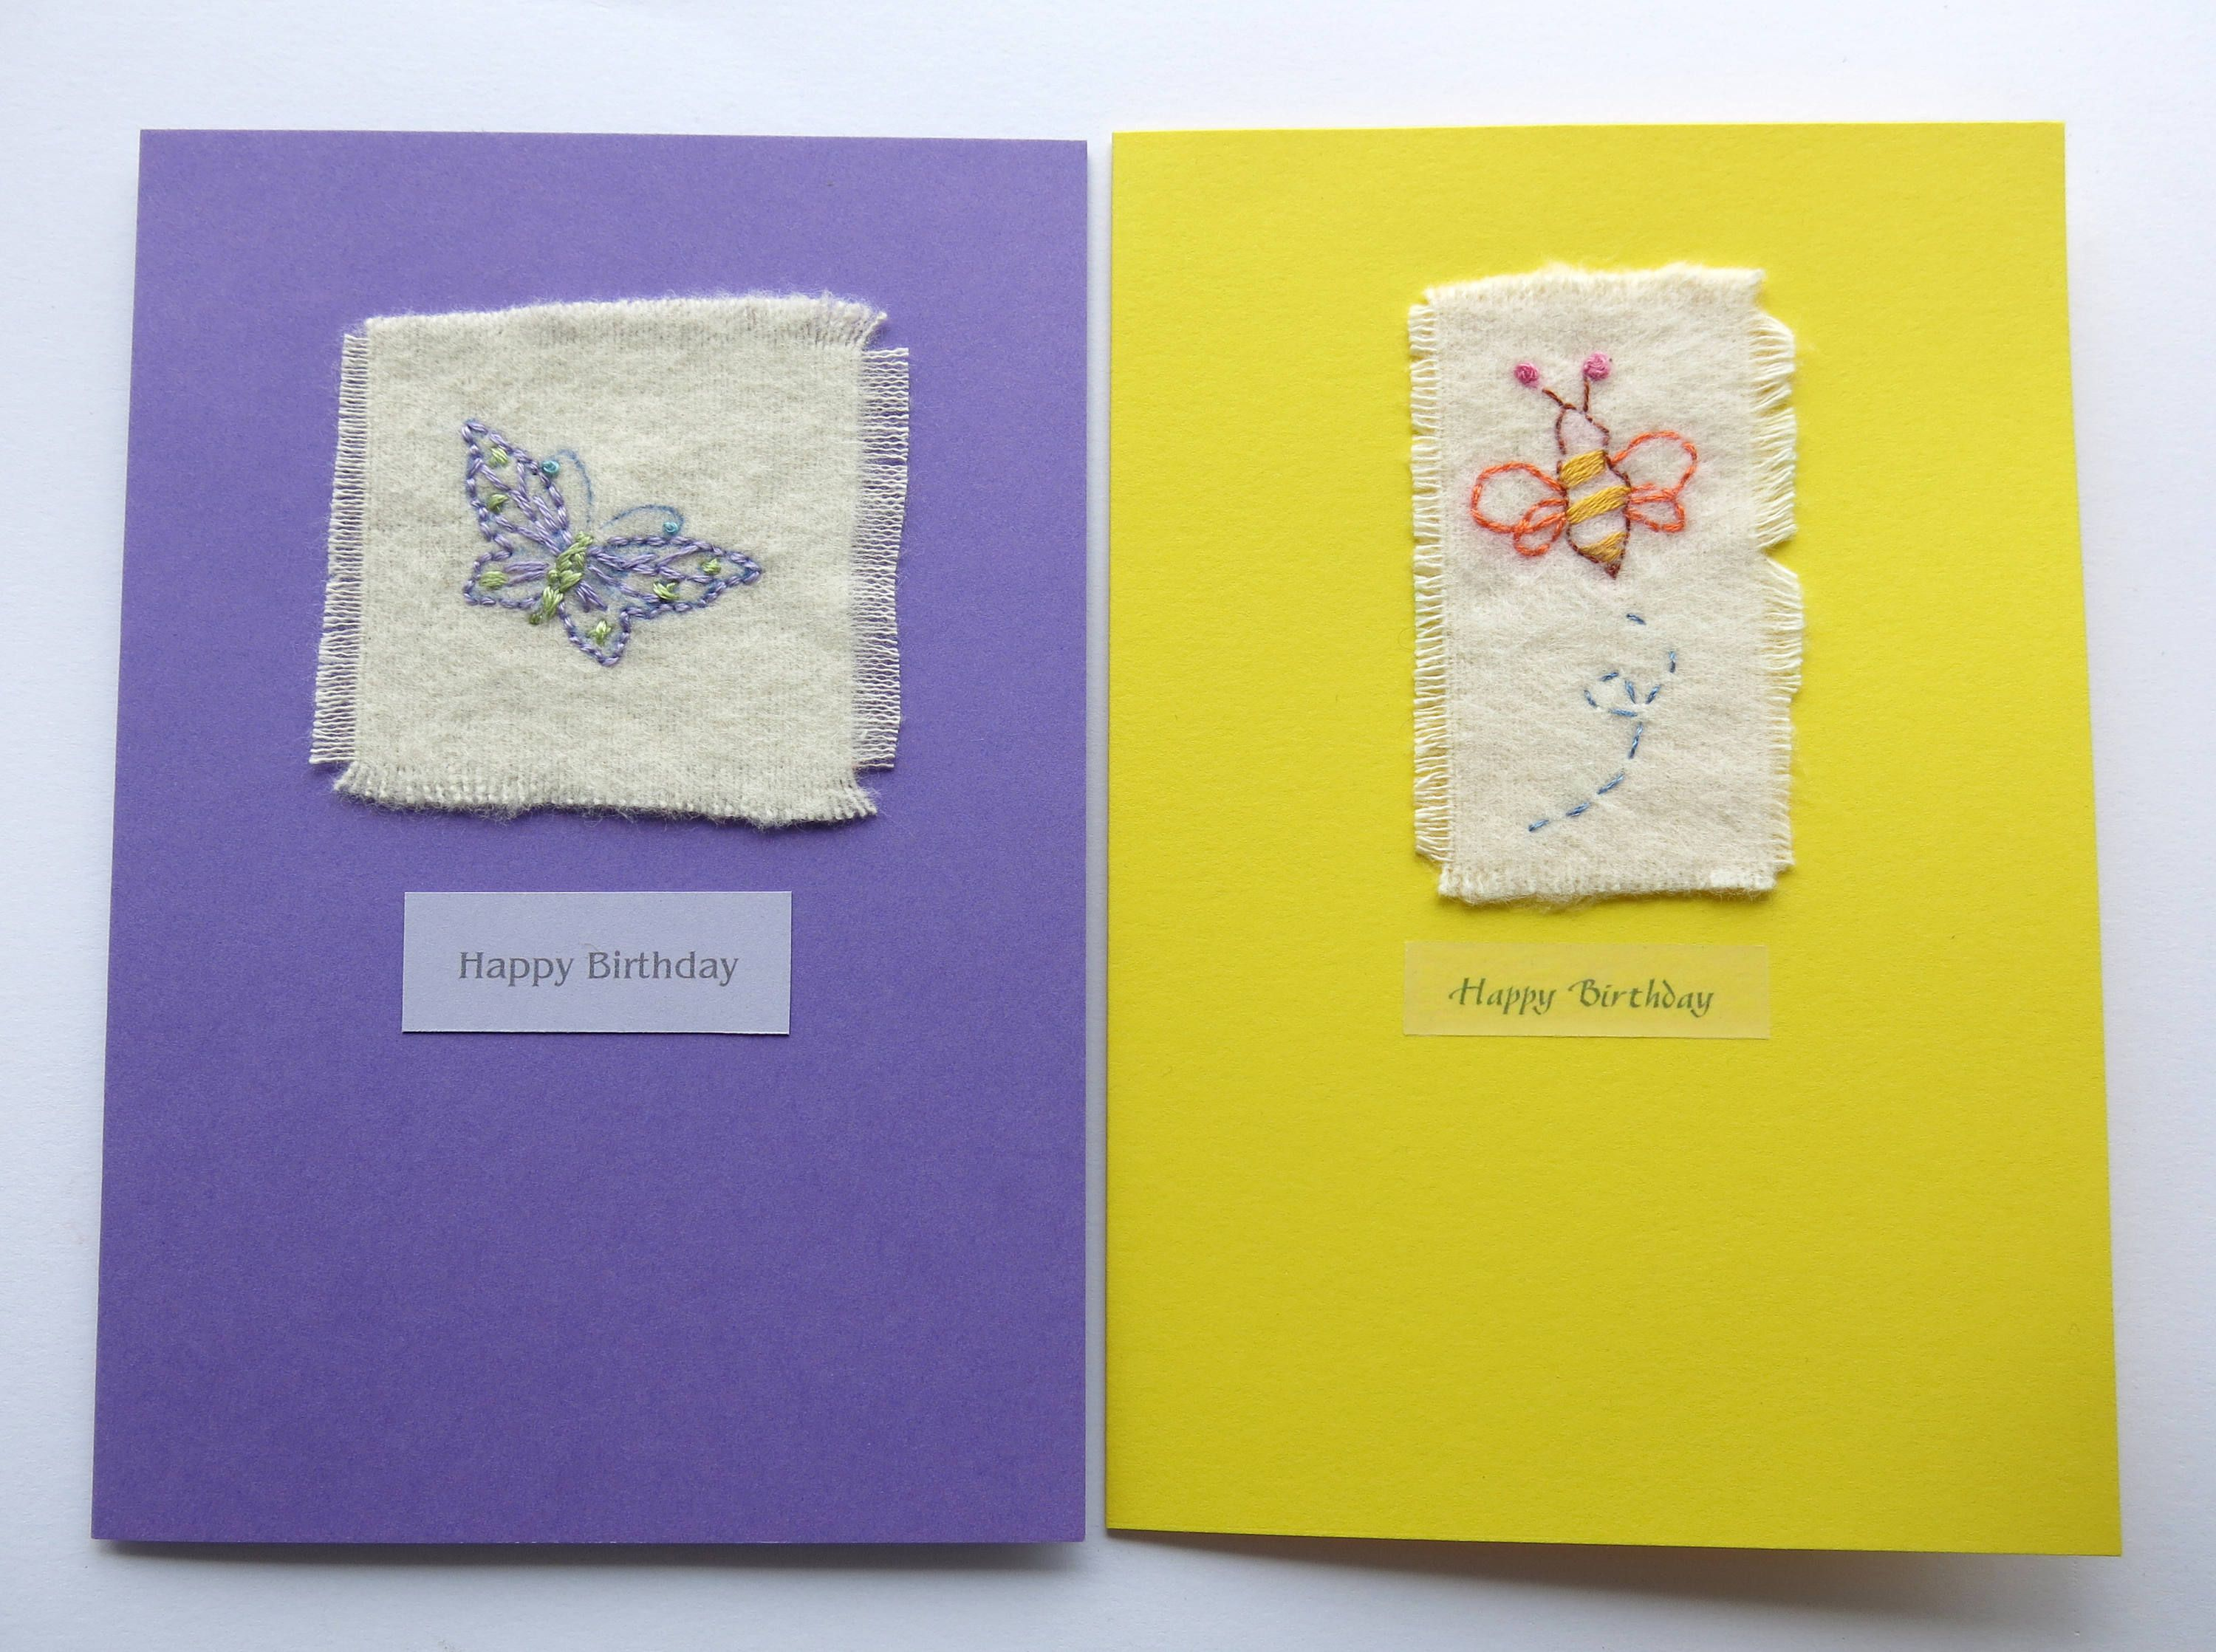 Embroidered card butterfly card greeting card birthday card card embroidered card butterfly card greeting card birthday card card blank card bee card hand embroidered card handmade uk seller stitched kristyandbryce Image collections